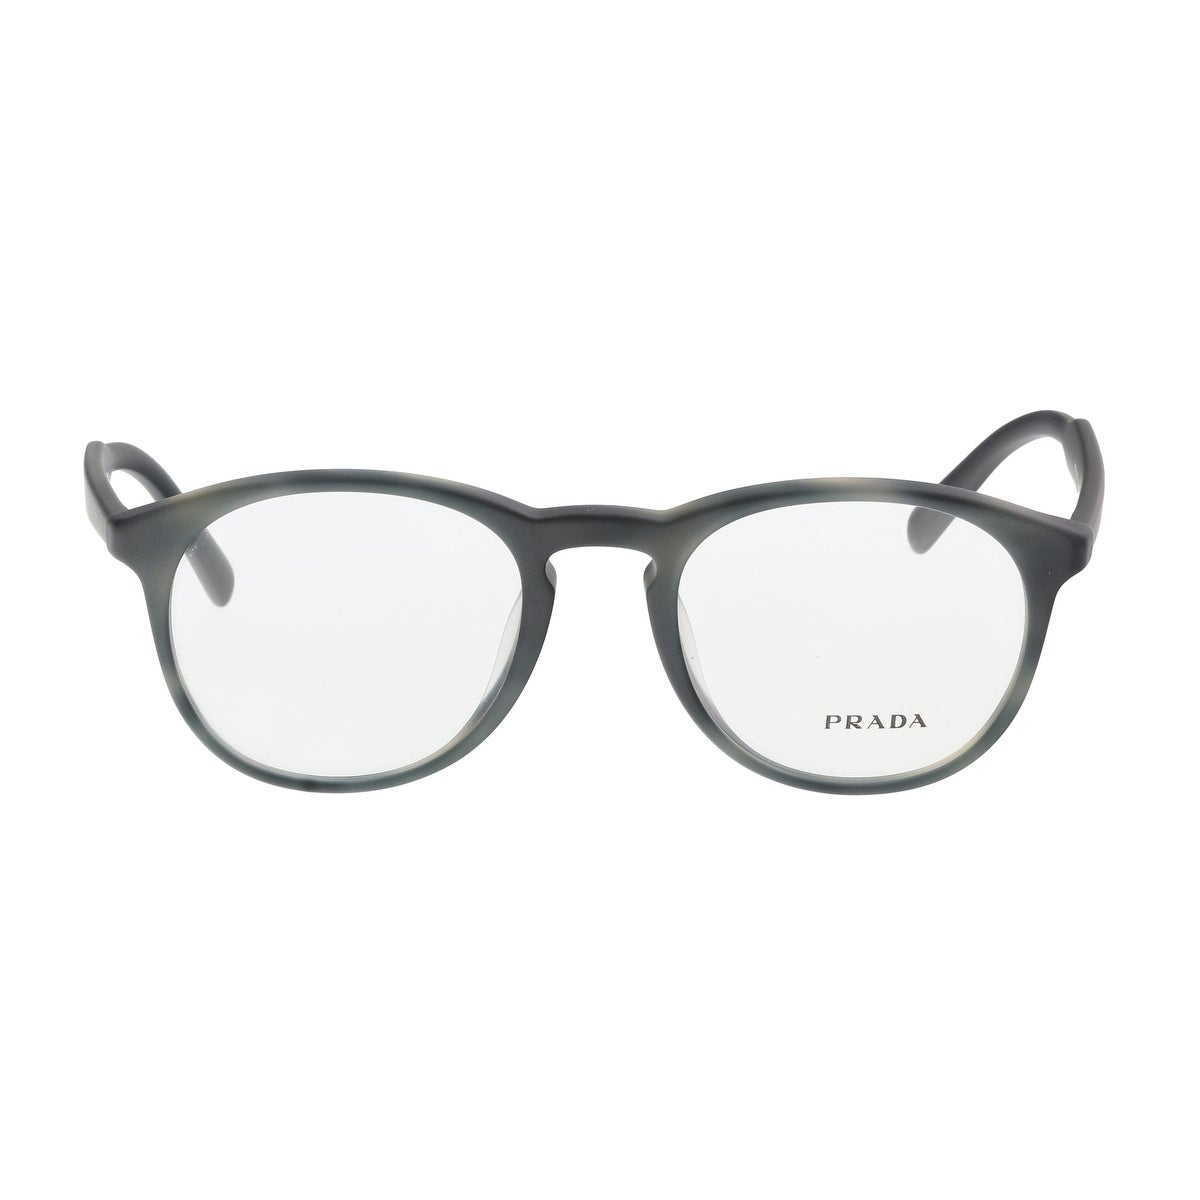 77cf2f1cf4a Shop Prada PR 19SVF USD1O1 Matte Grey Round Optical Frames - 50-20-140 -  Free Shipping Today - Overstock - 19547295